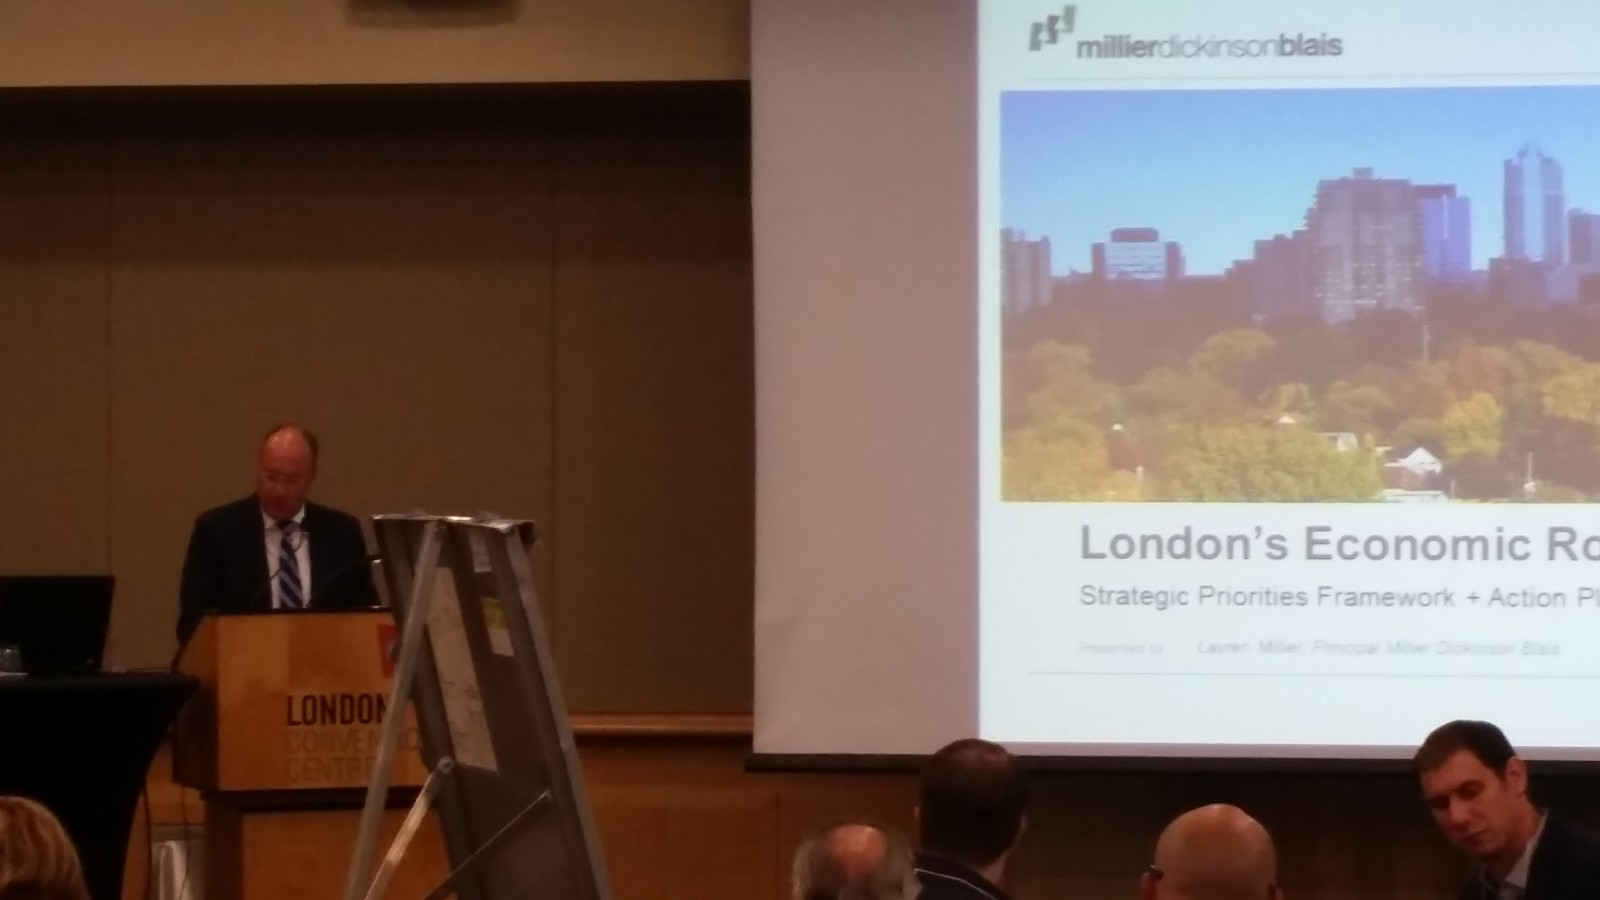 London almost finished its economic road map